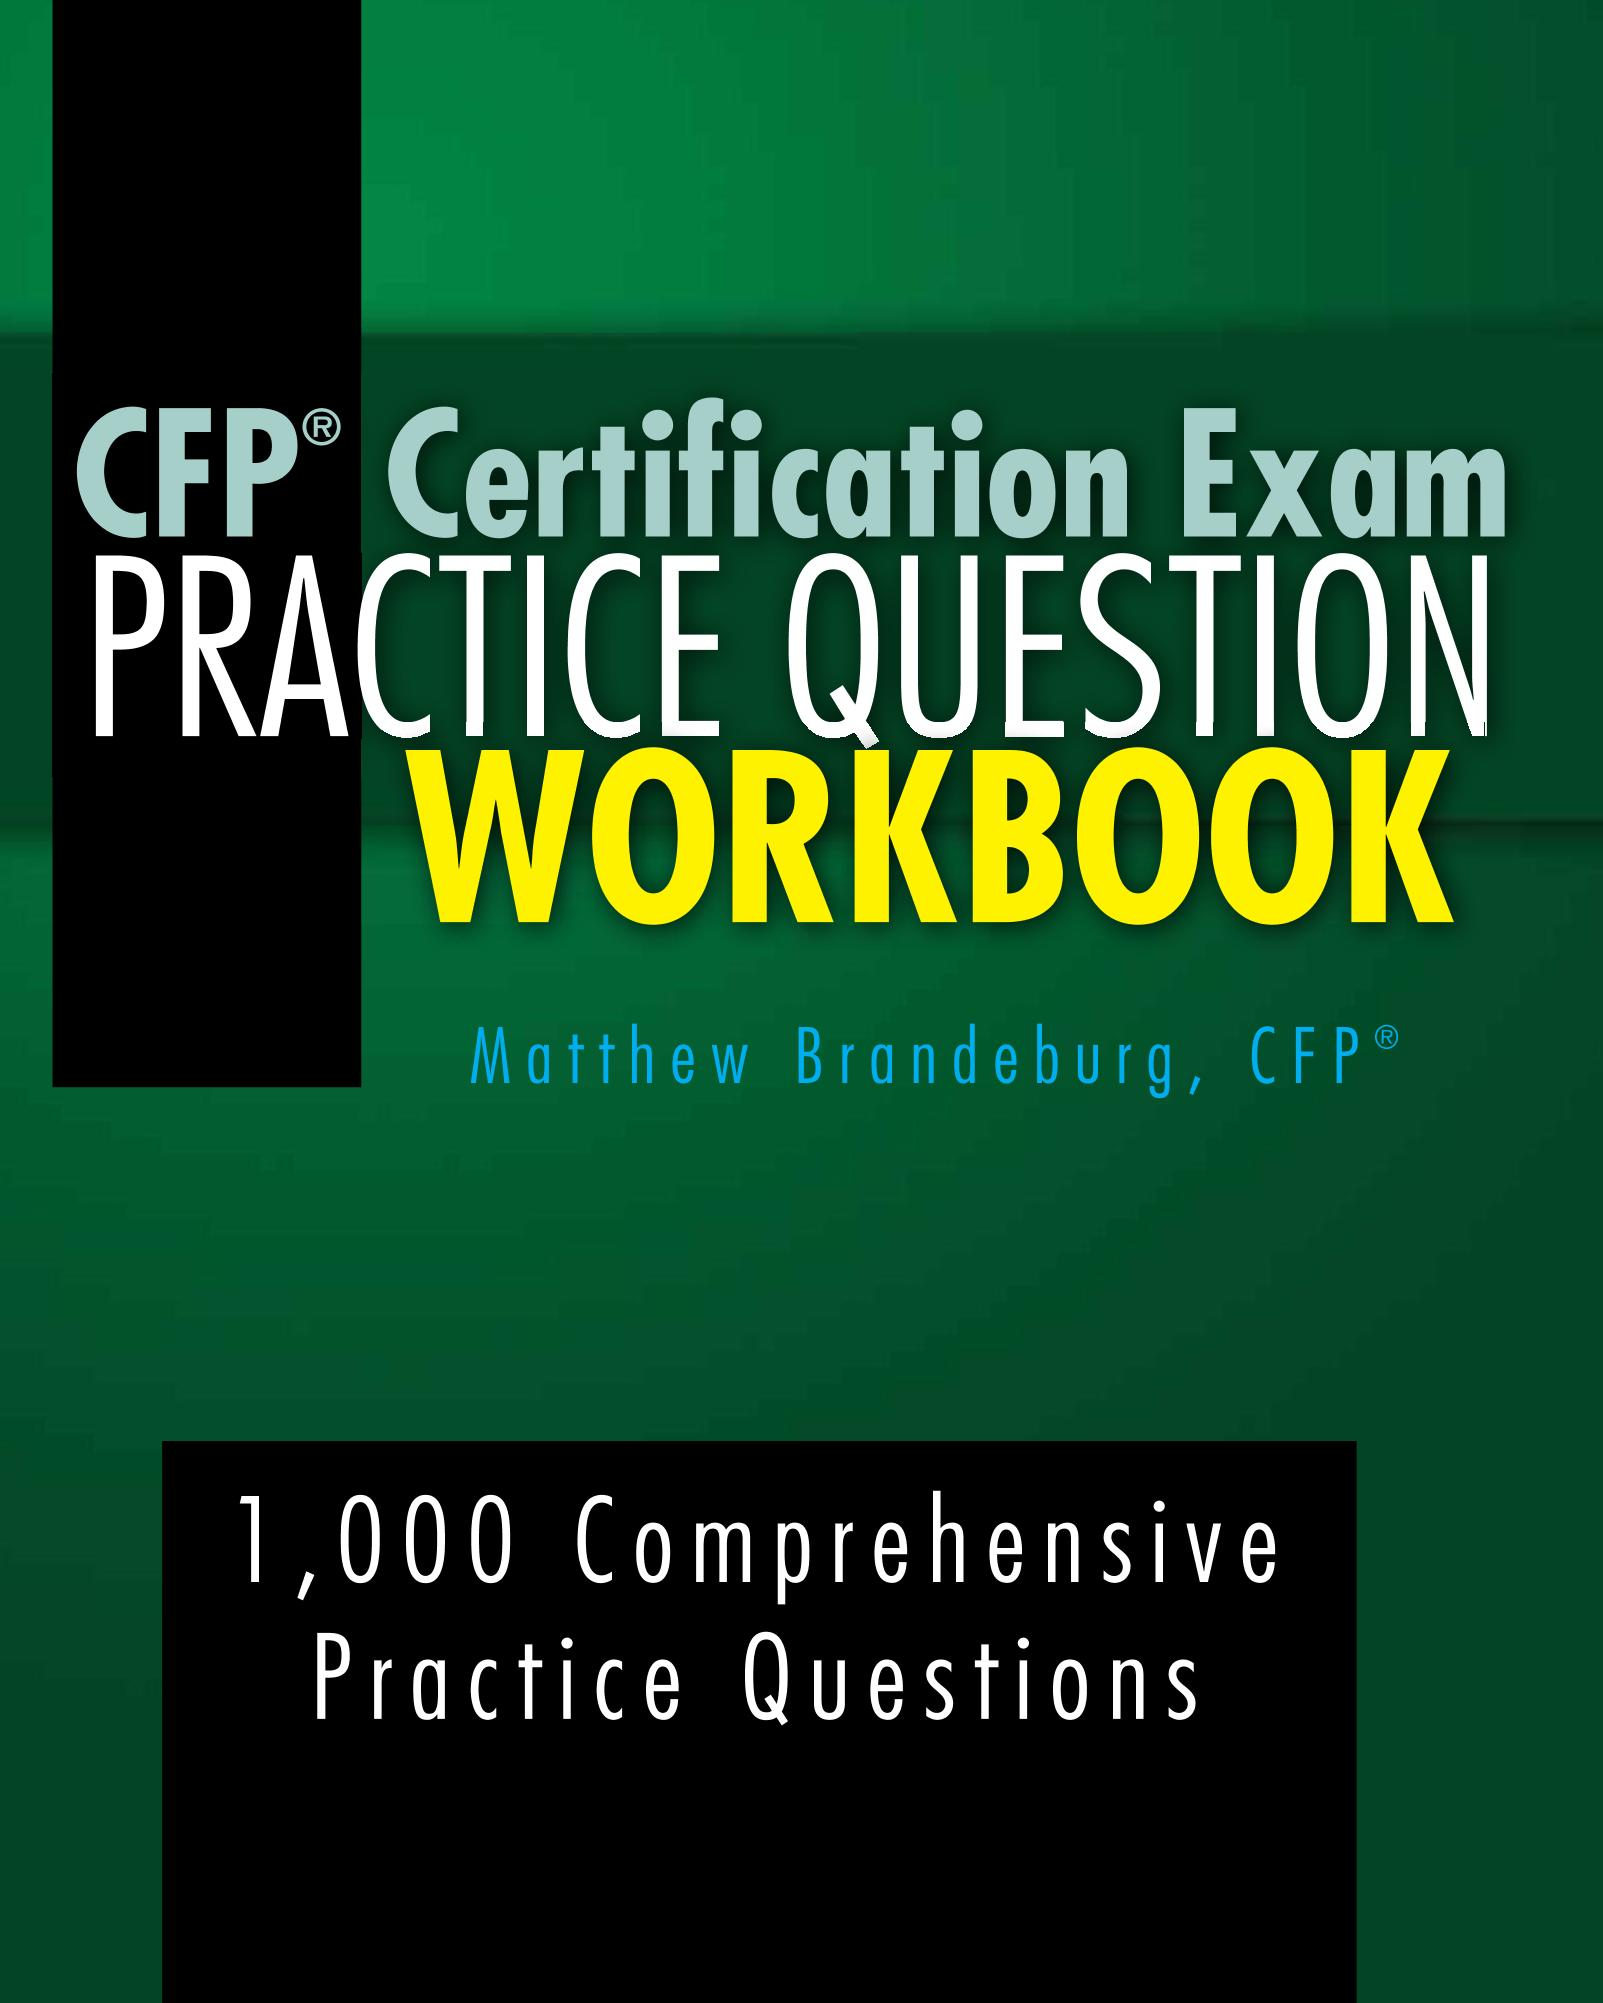 Smashwords Cfp Certification Exam Practice Question Workbook